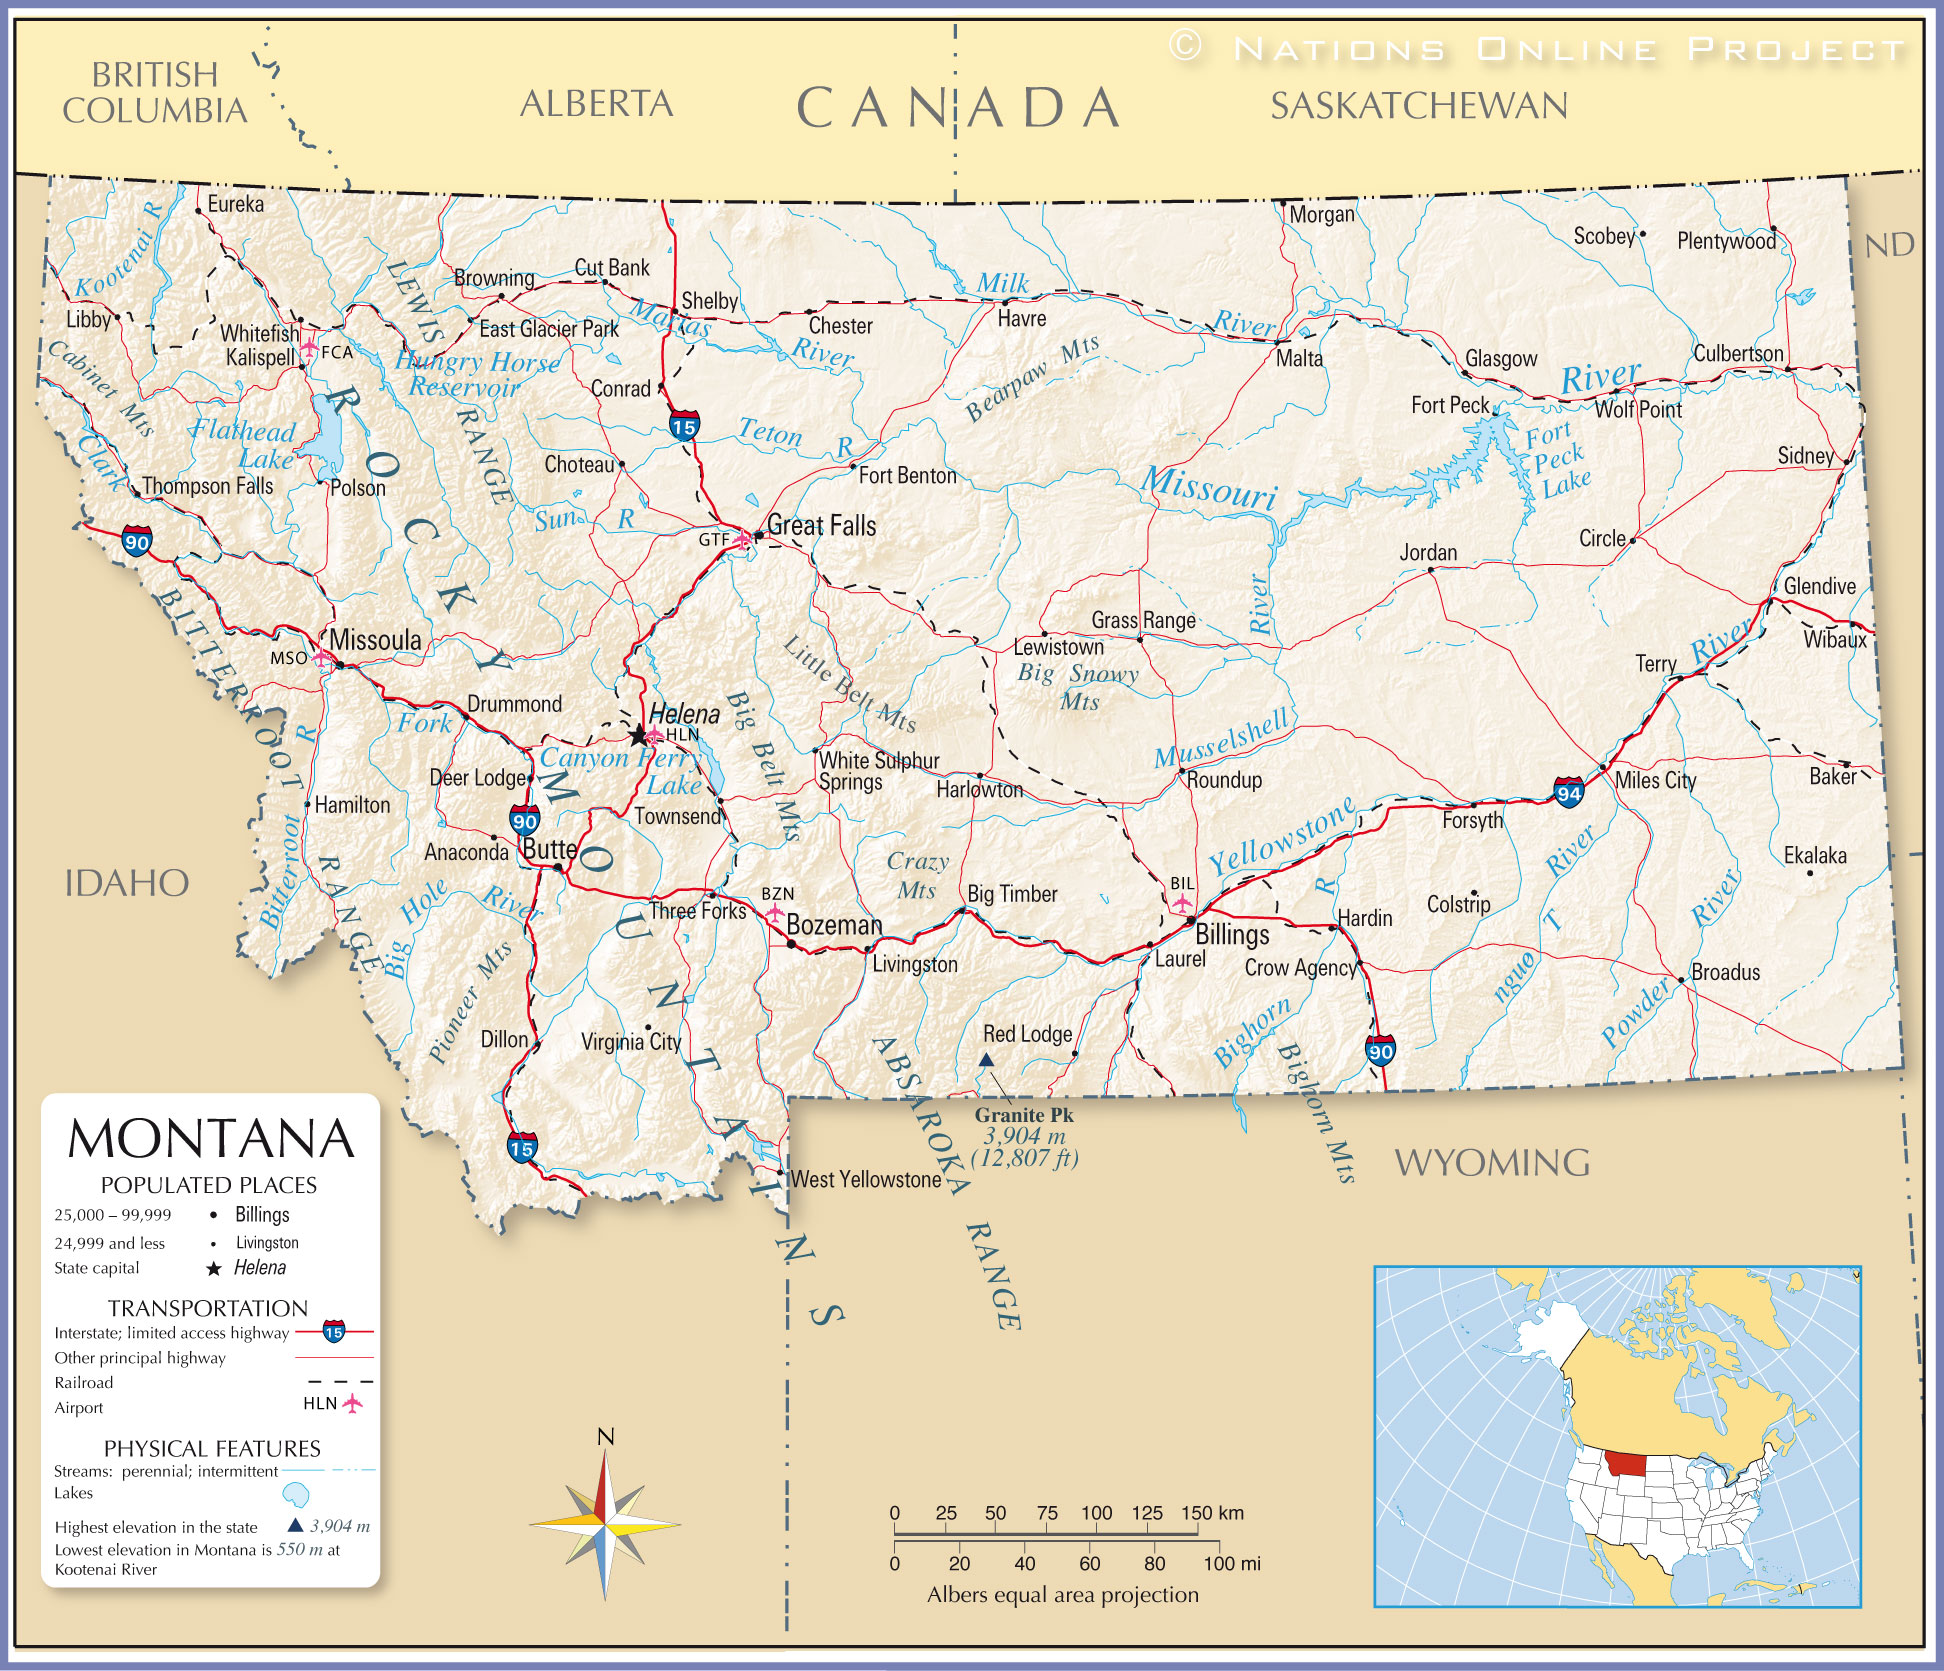 Reference Map Of Montana USA Nations Online Project - Montana map